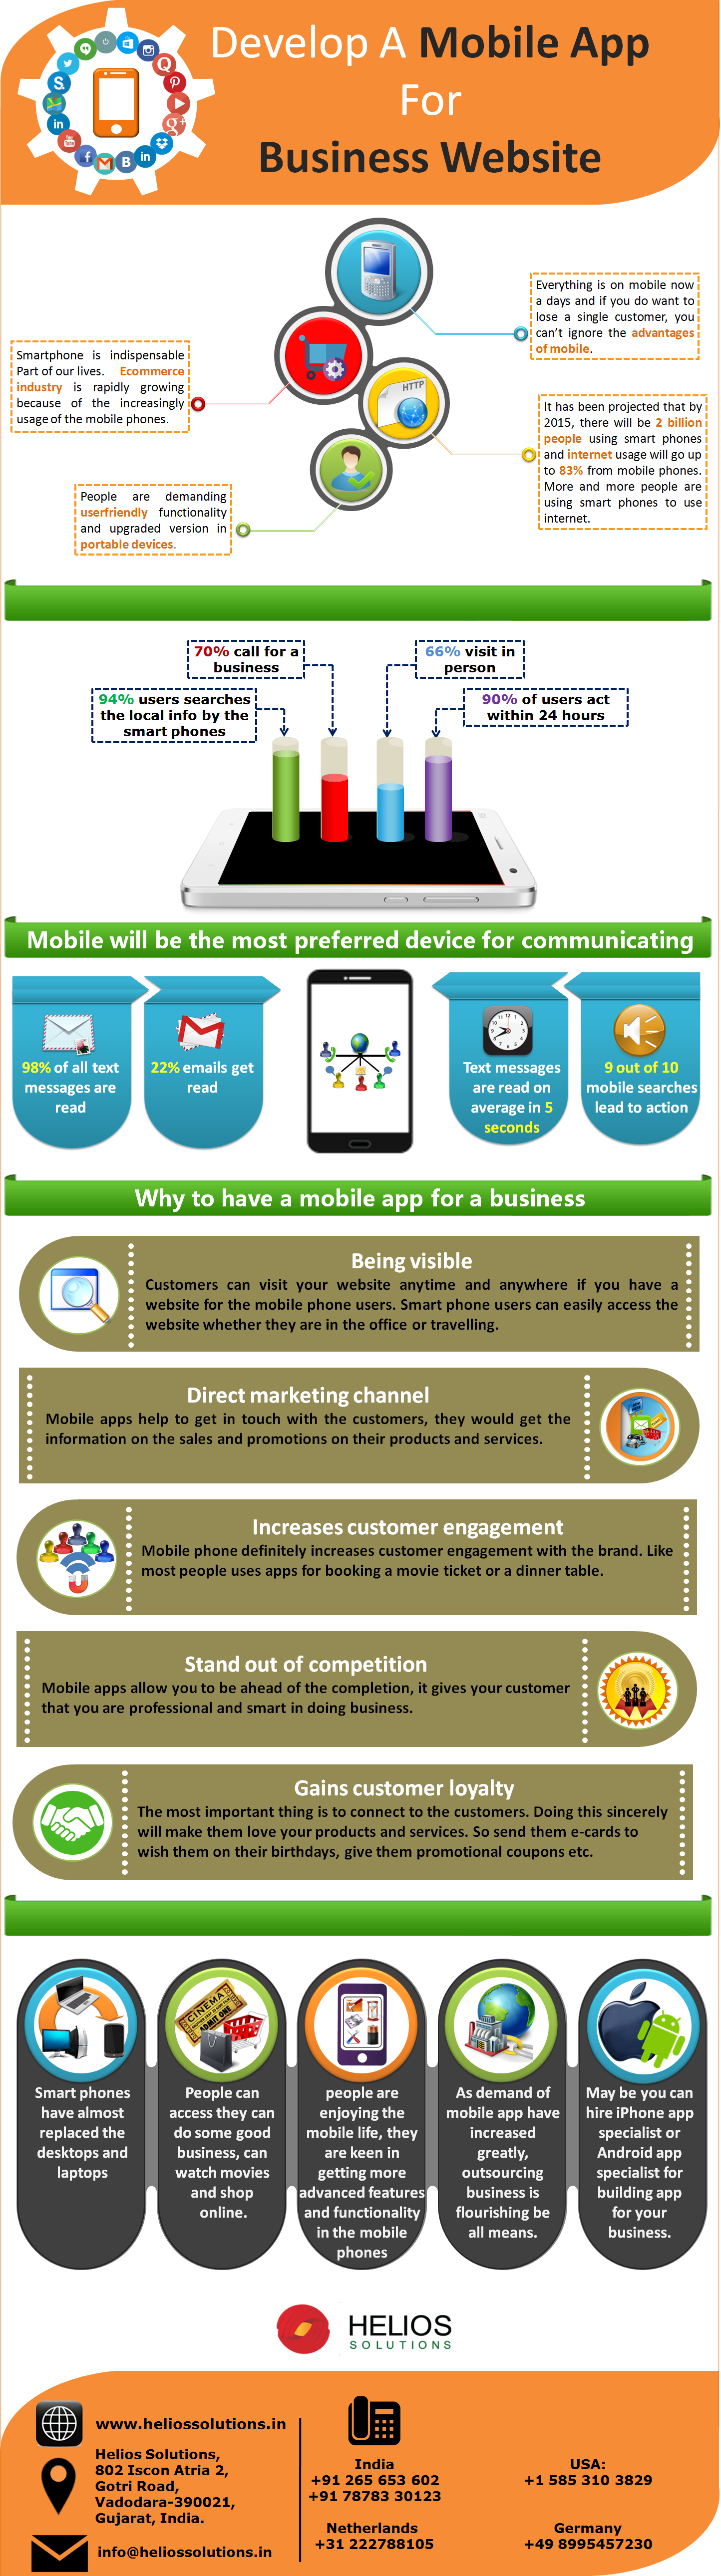 Develop A Mobile App For Business Website